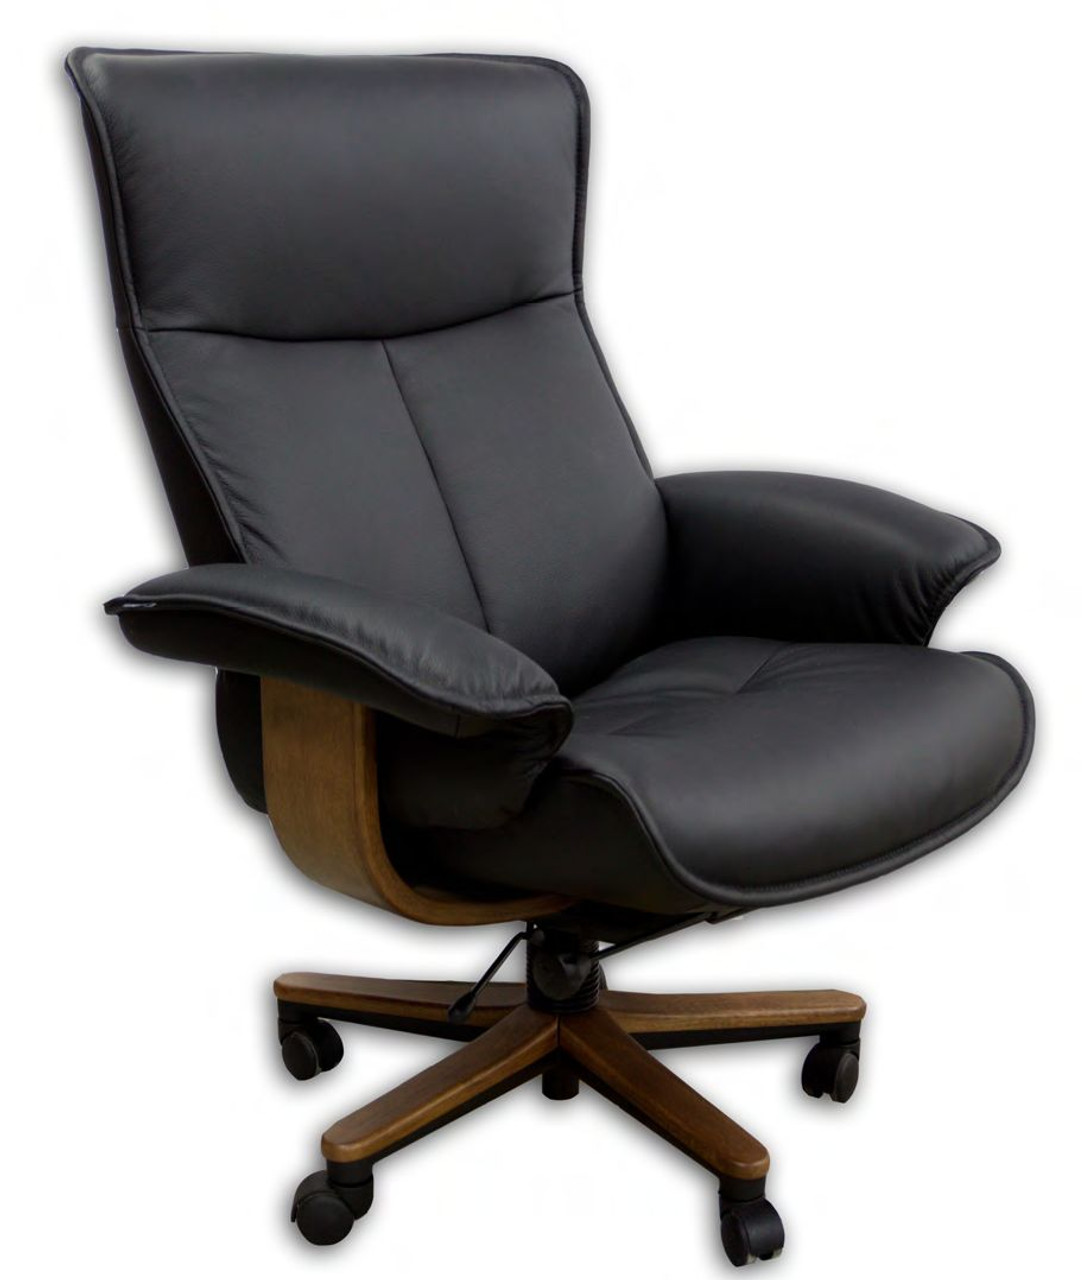 Pleasing Senator Office Chair Legally Comfortable By Fjords Gmtry Best Dining Table And Chair Ideas Images Gmtryco